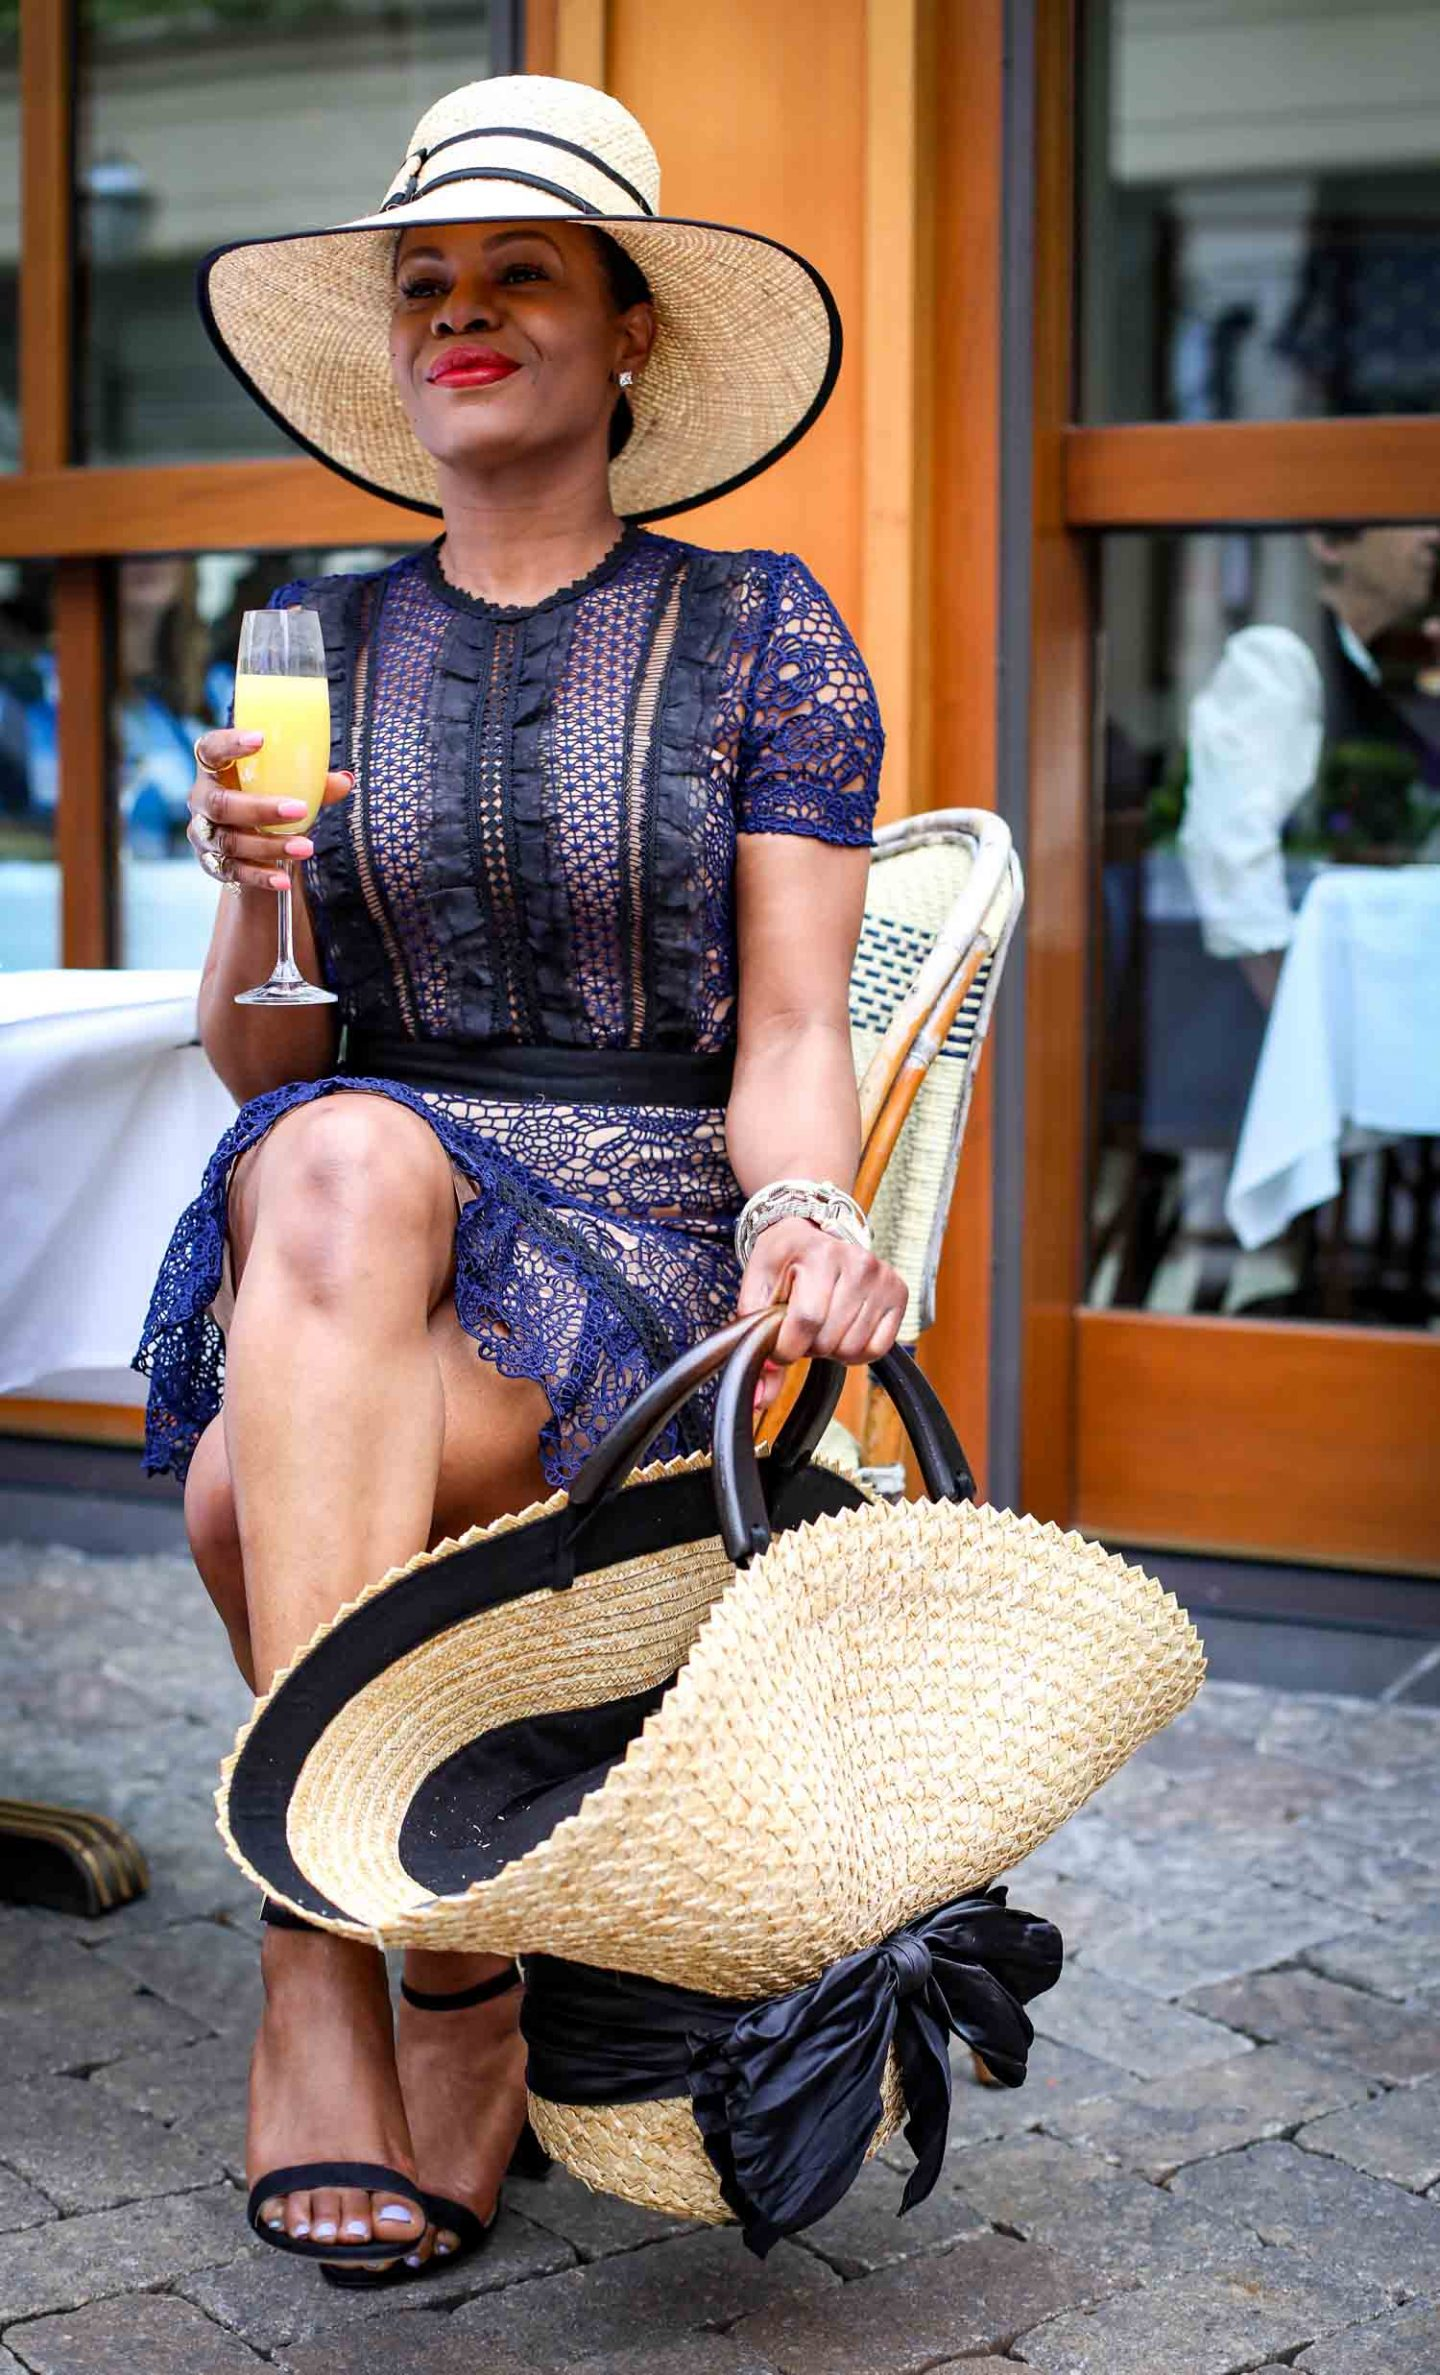 DERBY GIRL – YOUR STYLE GUIDE TO THE KENTUCKY DERBY